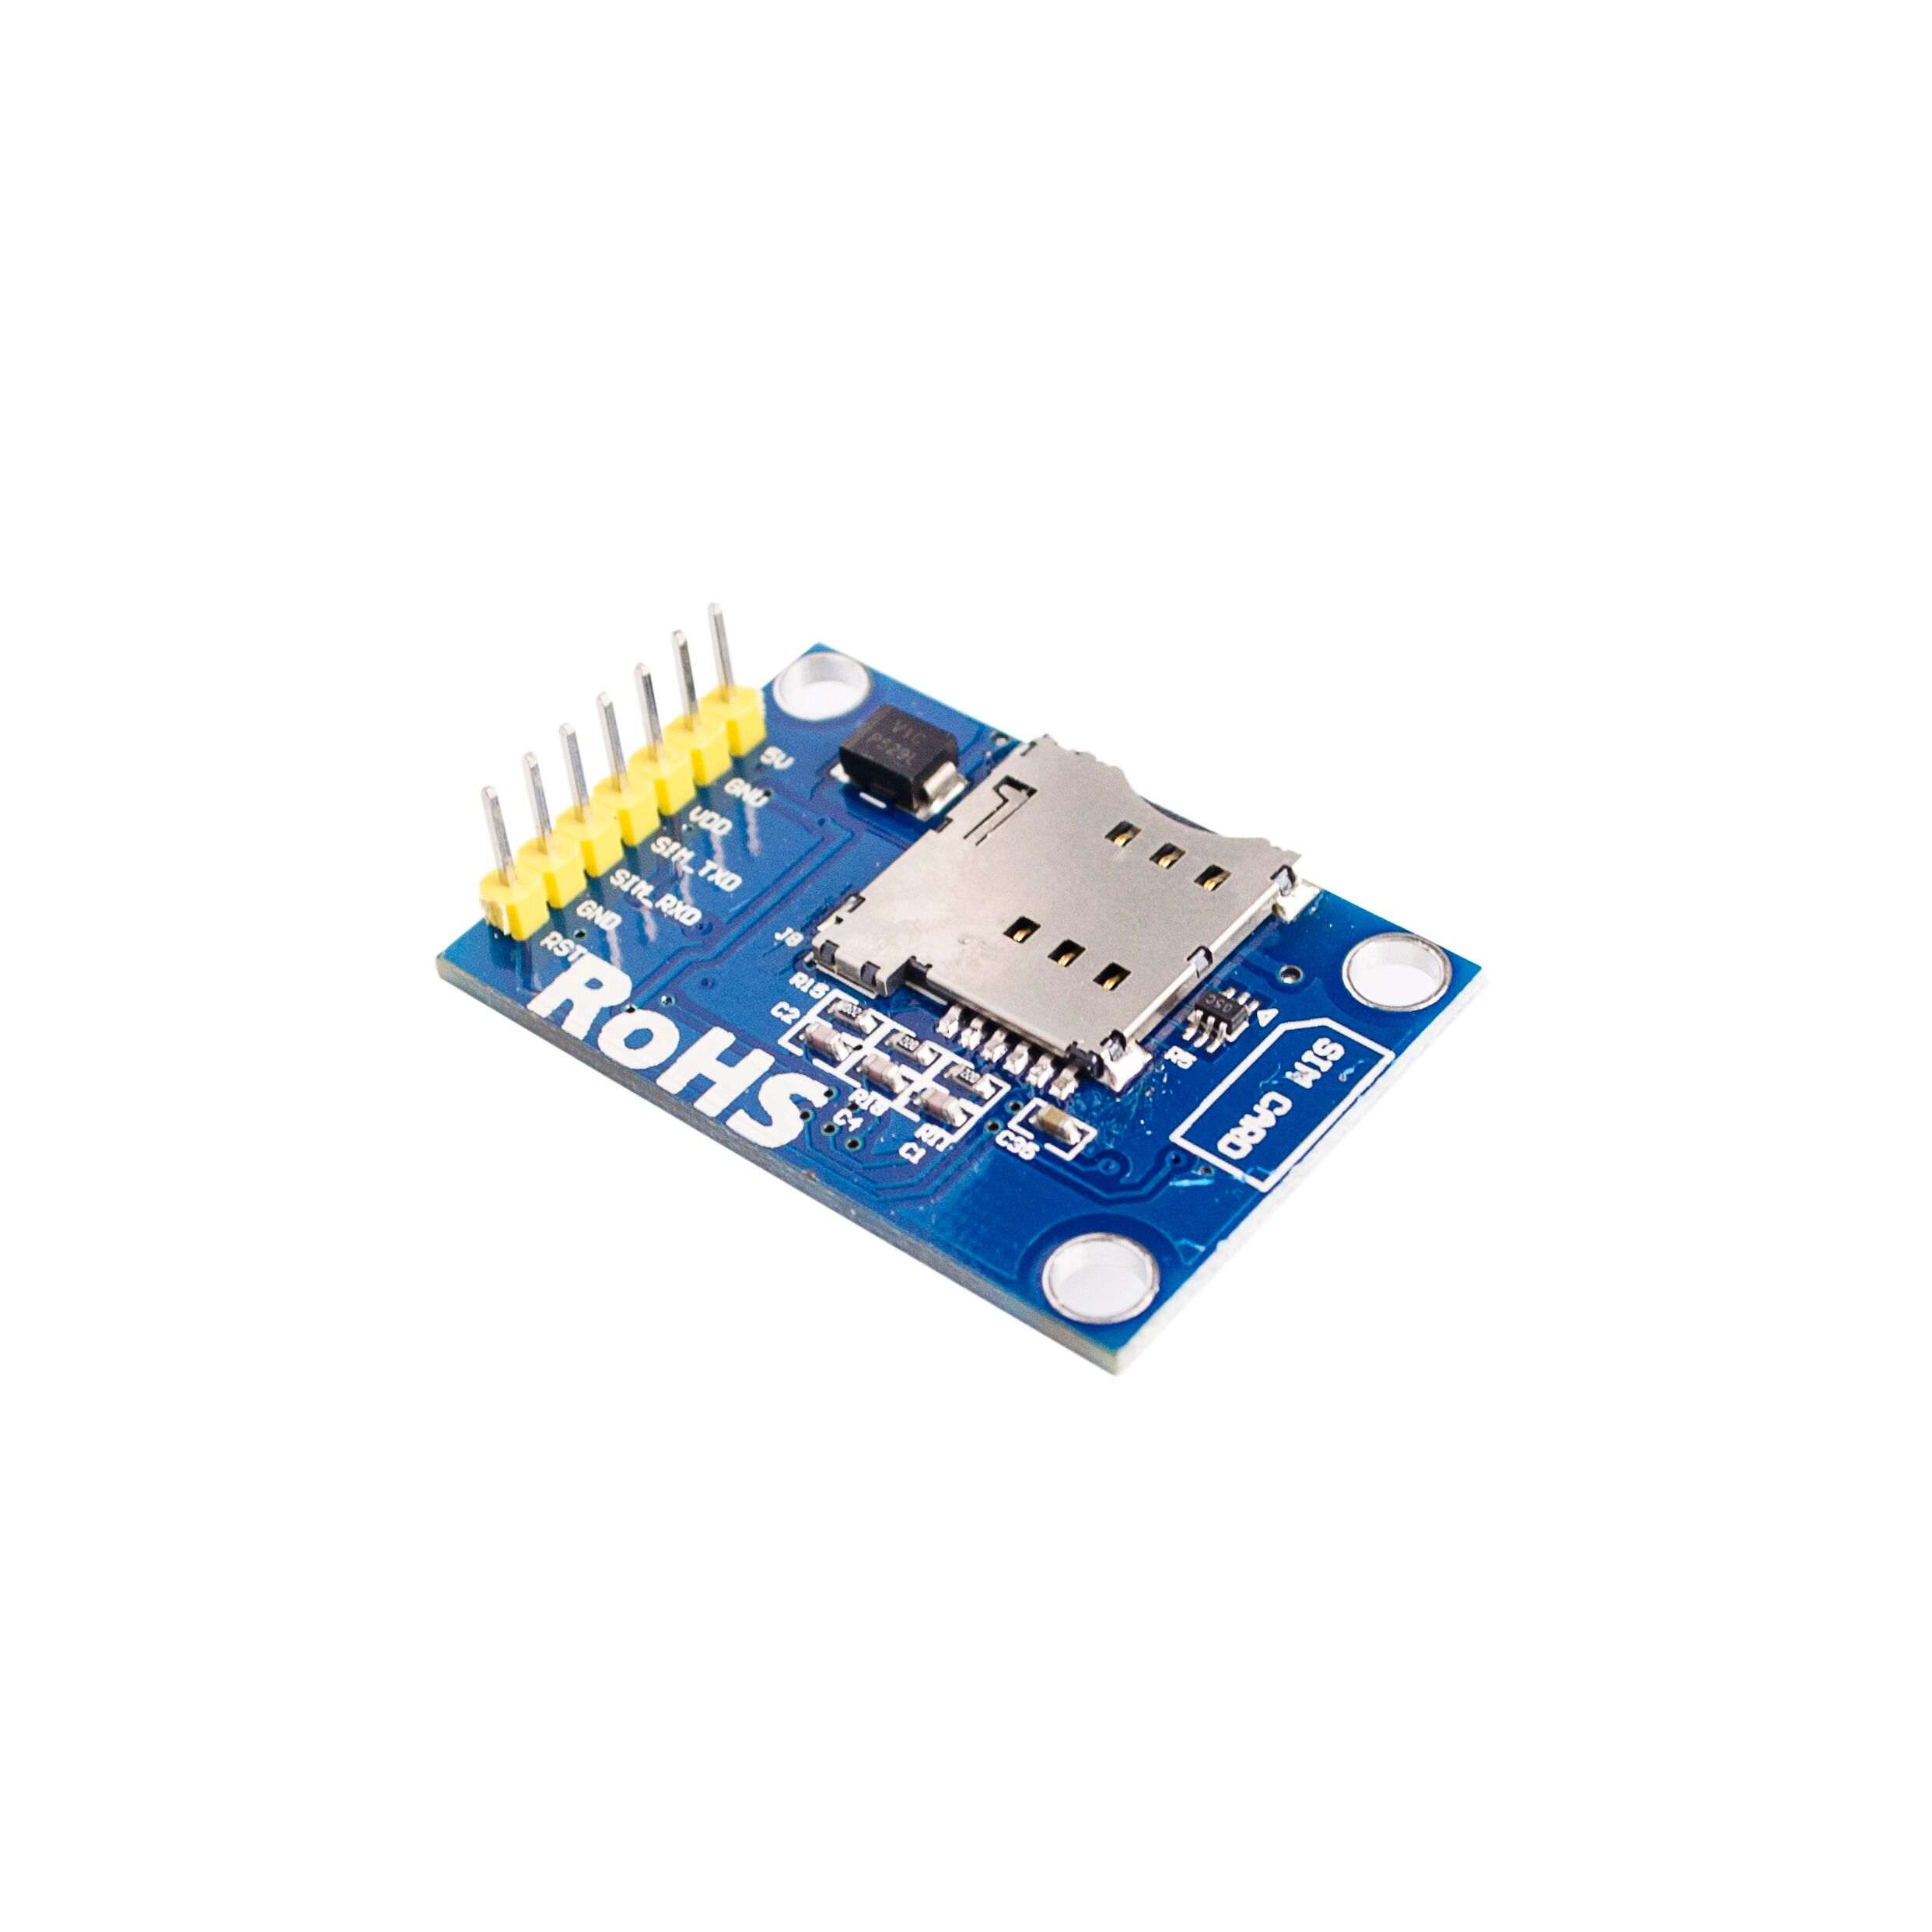 Quad Band Gsm Gprs Tx Modules New Sim800l Module W Pcb Antenna Sim Board For Mcu Arduino In Integrated Circuits From Electronic Components Supplies On